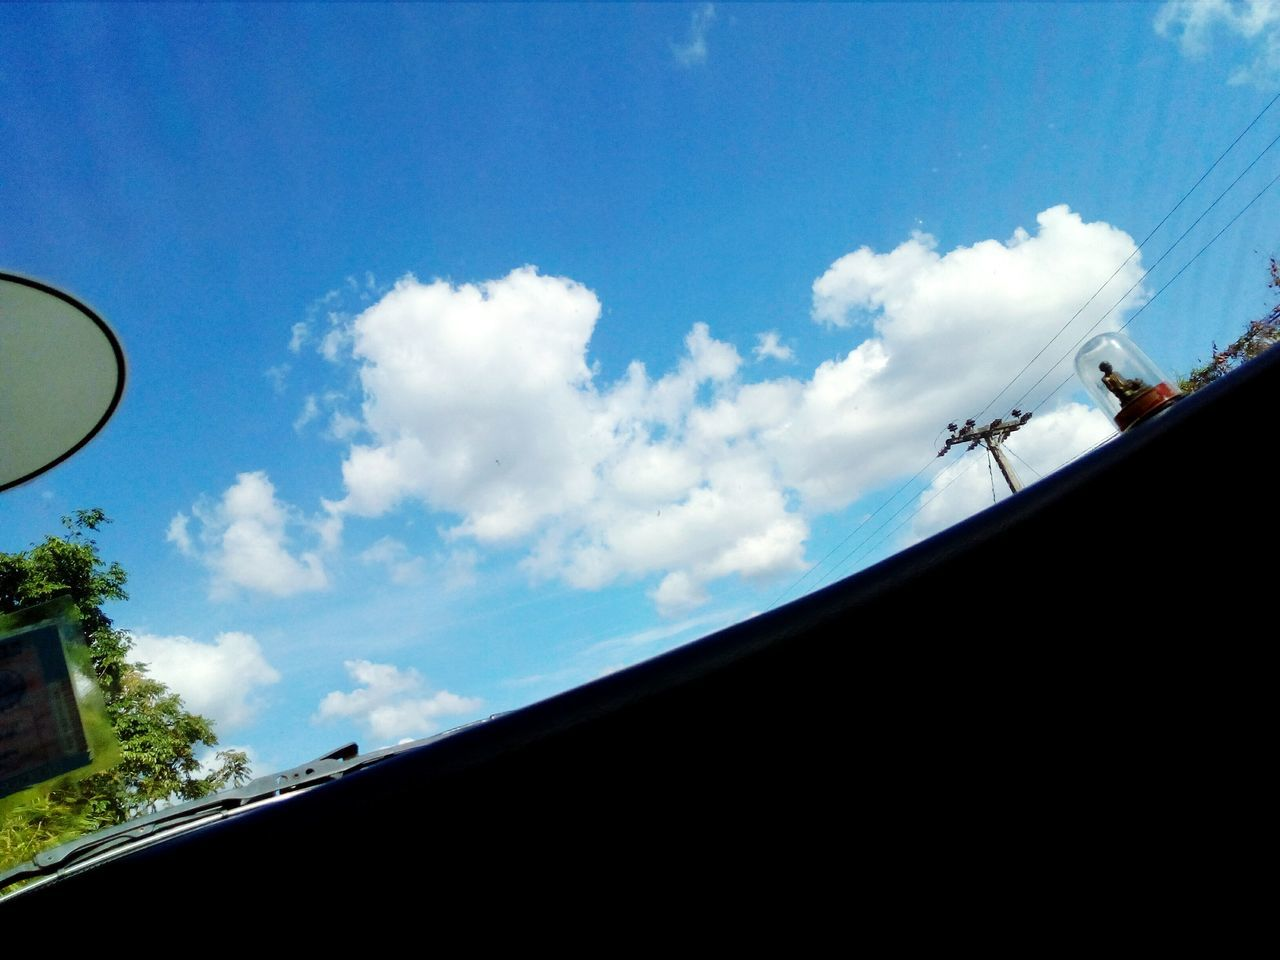 sky, low angle view, cloud - sky, day, blue, no people, nature, outdoors, tree